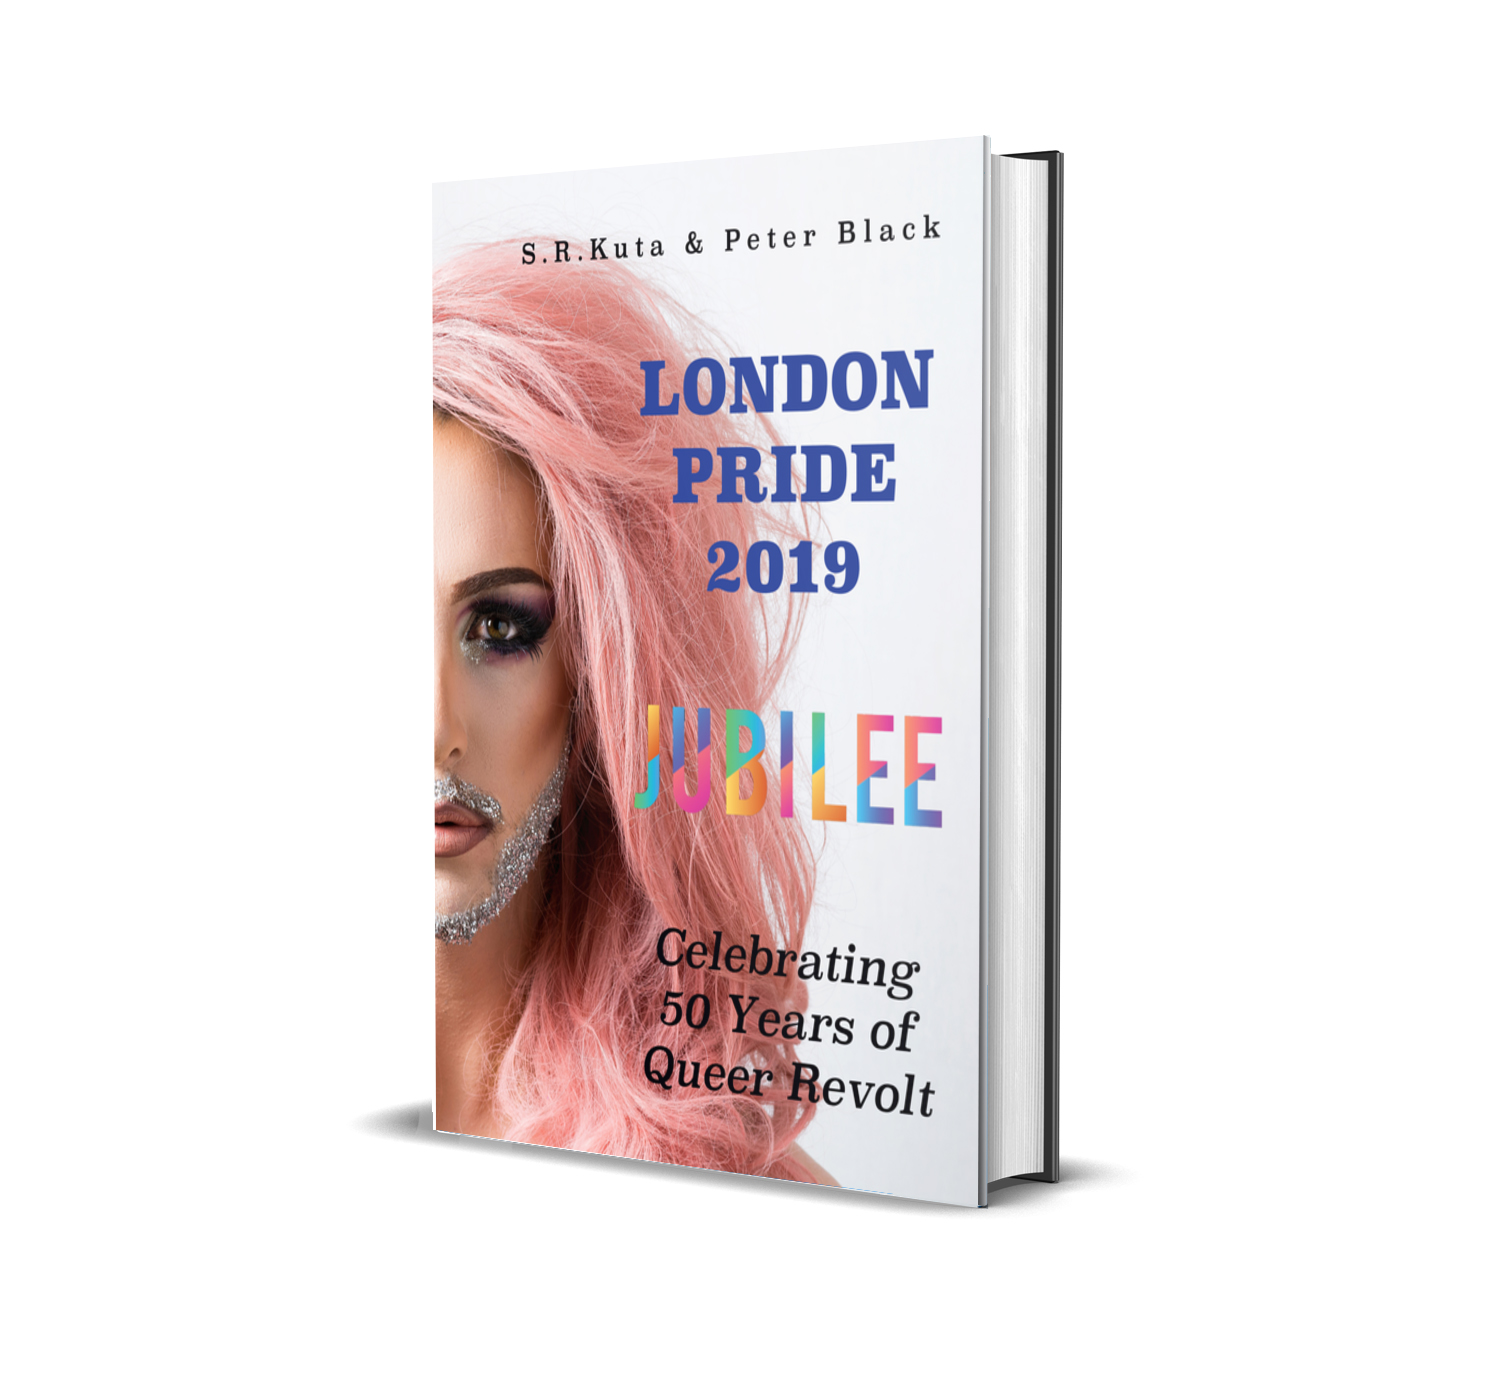 Jubilee - London Pride 2019 by S.R. Kuta and Peter Black